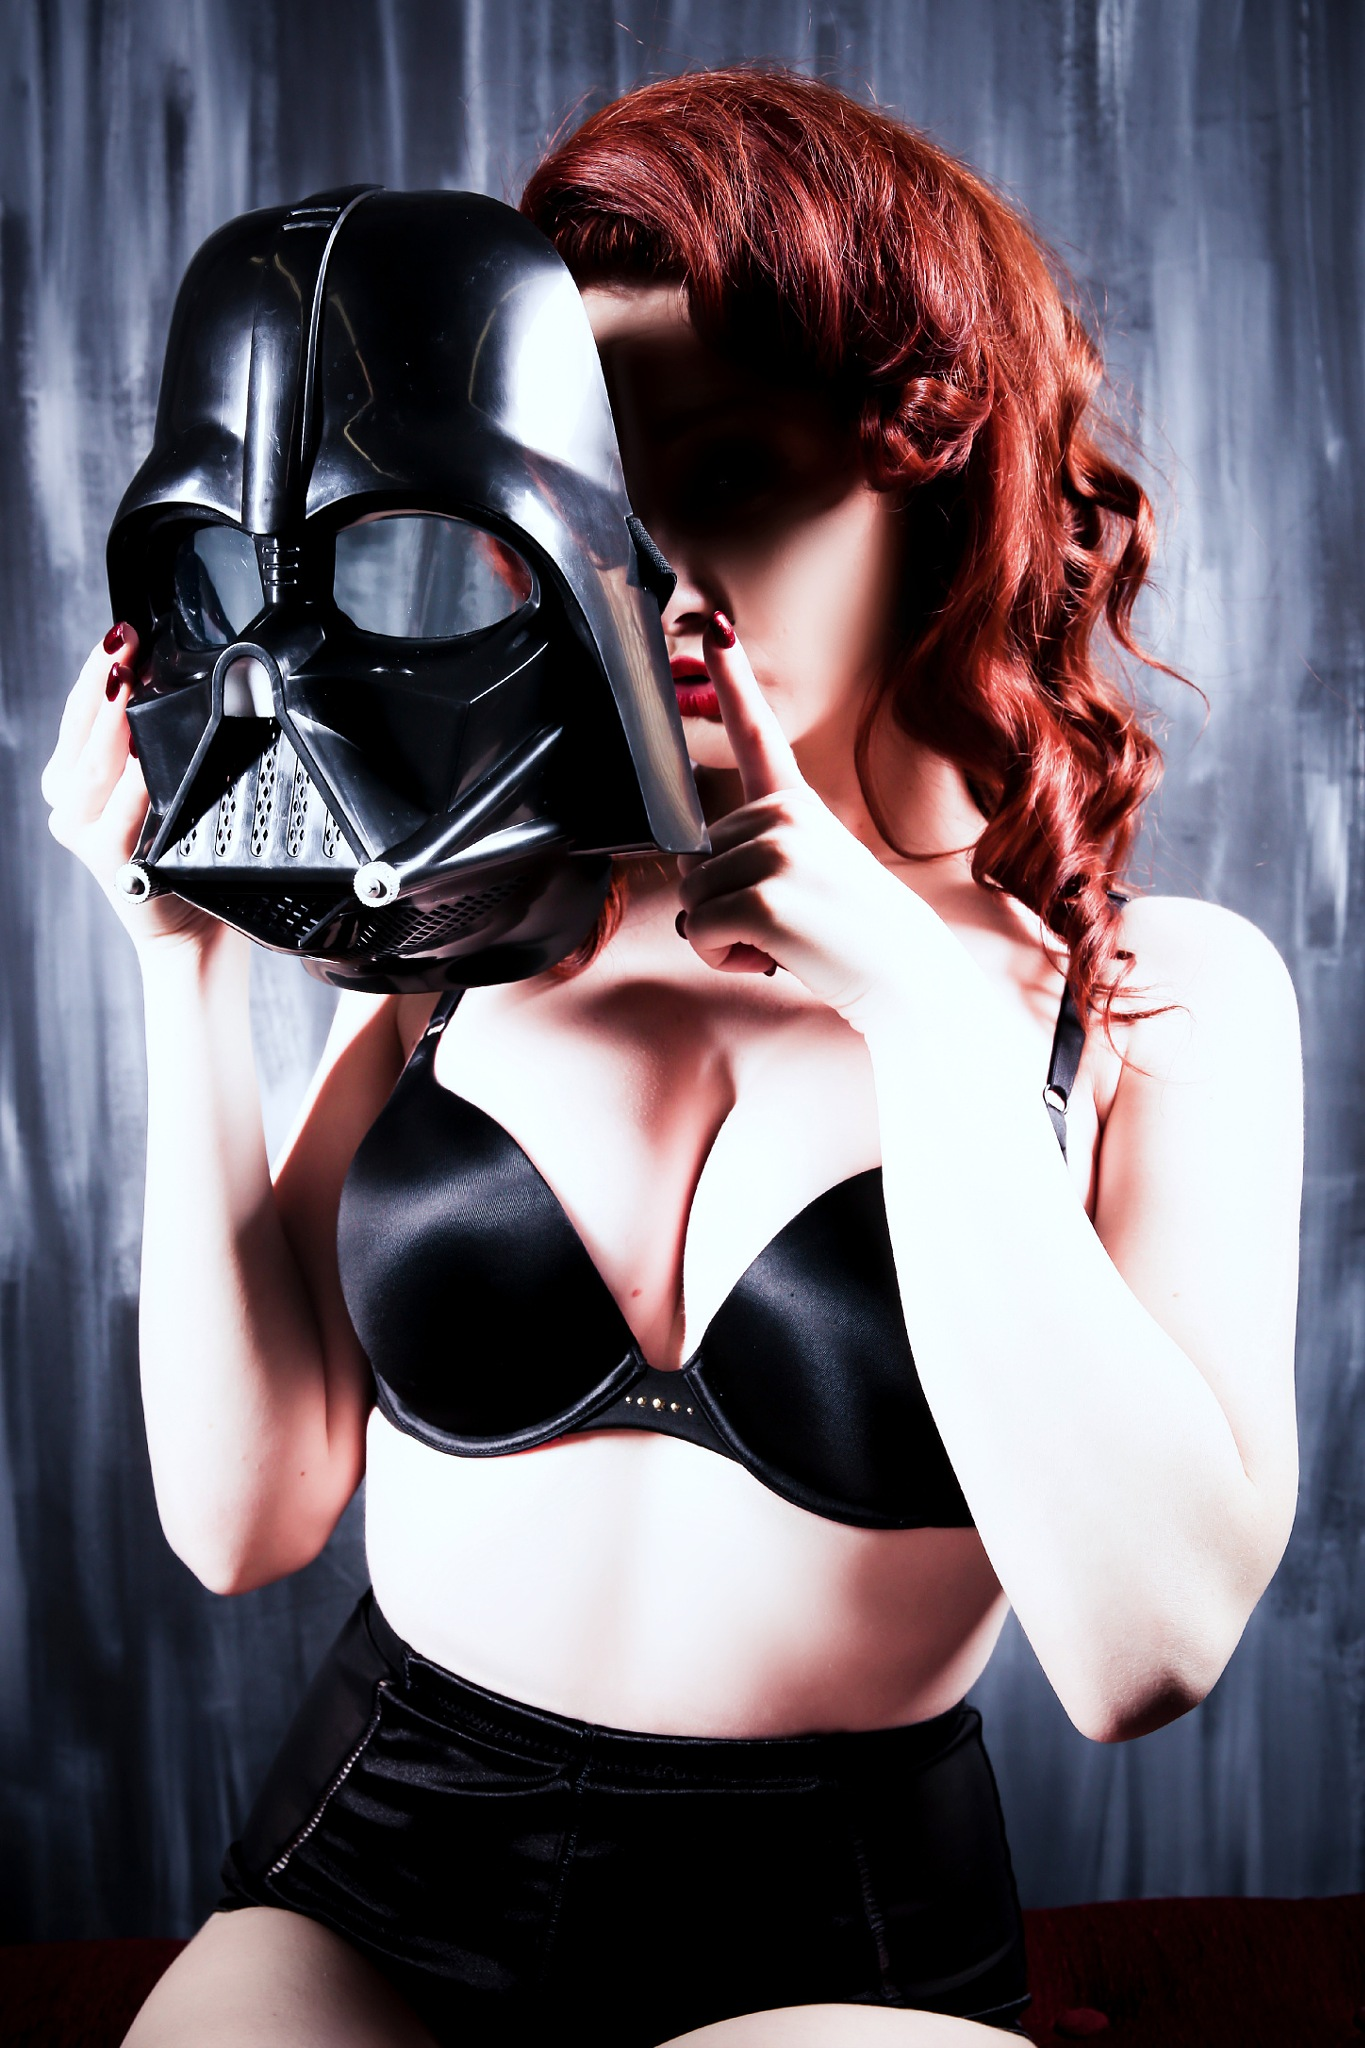 Ssshhhh...just me and Vader by mrusc96